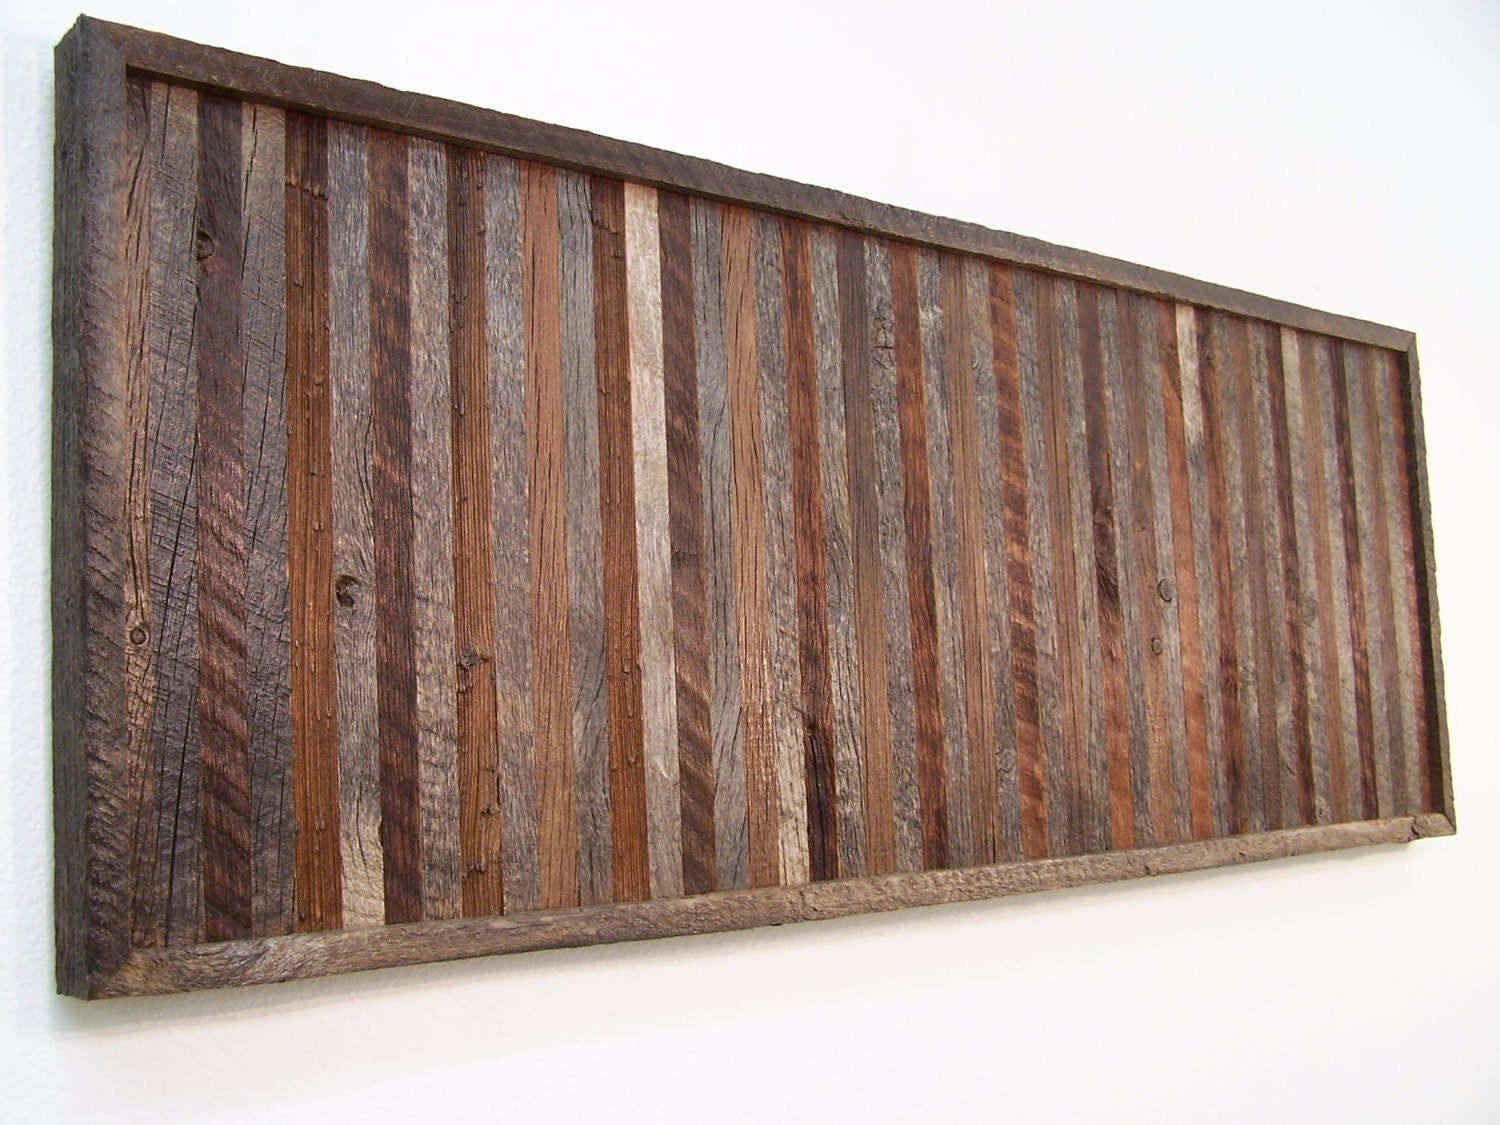 Wall Decor Made From Wood : Reclaimed barn wood wall art decor handmade by